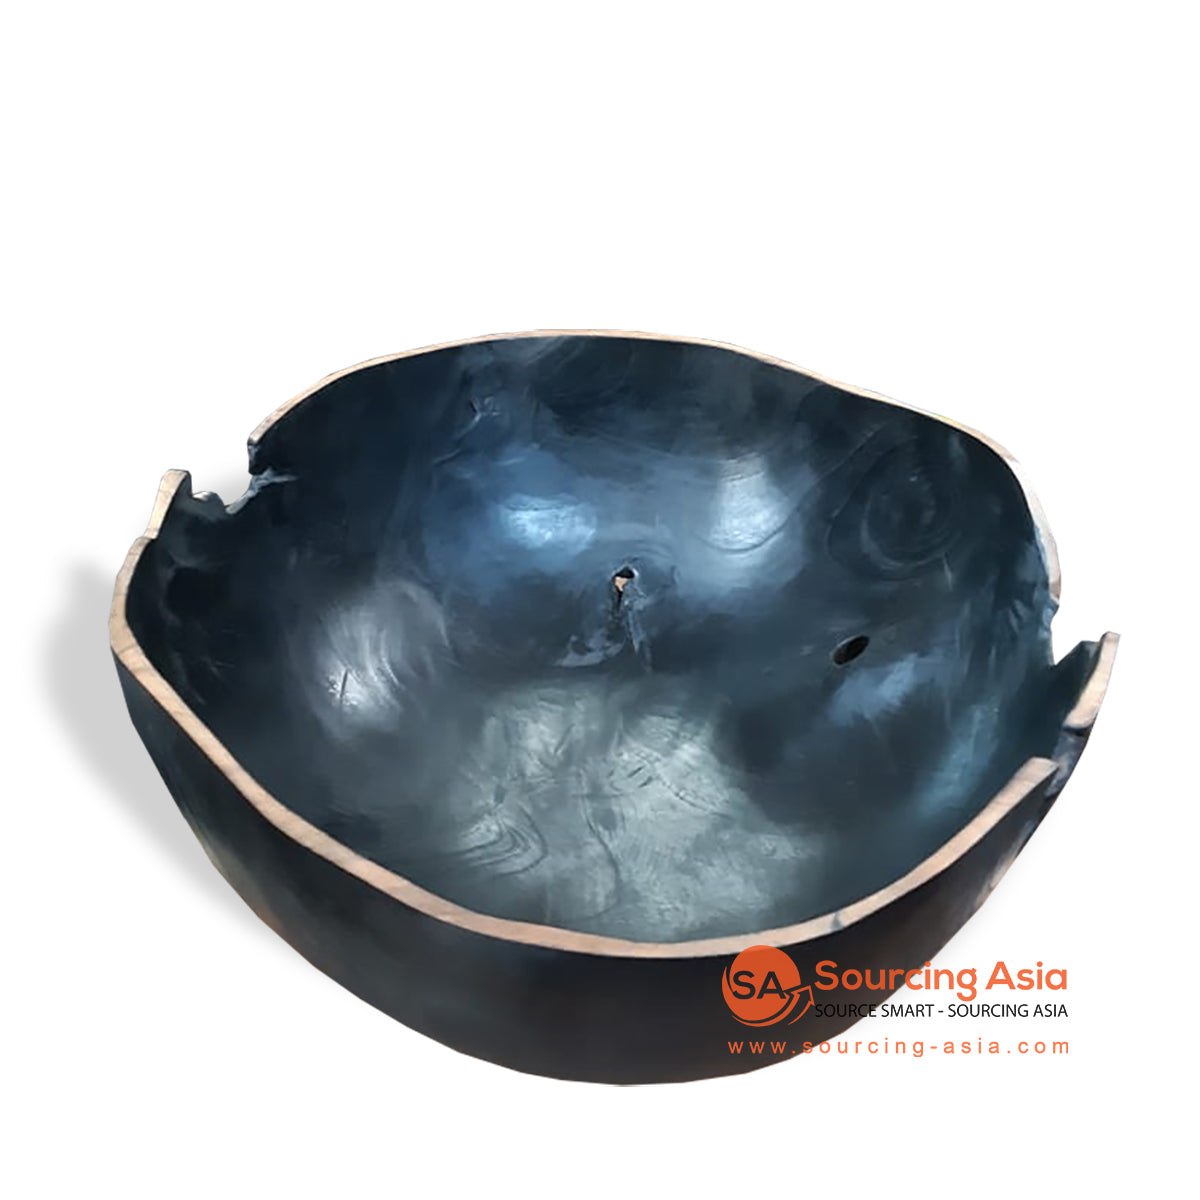 BMW132-2BK TEAK WOOD BOWL BLACK